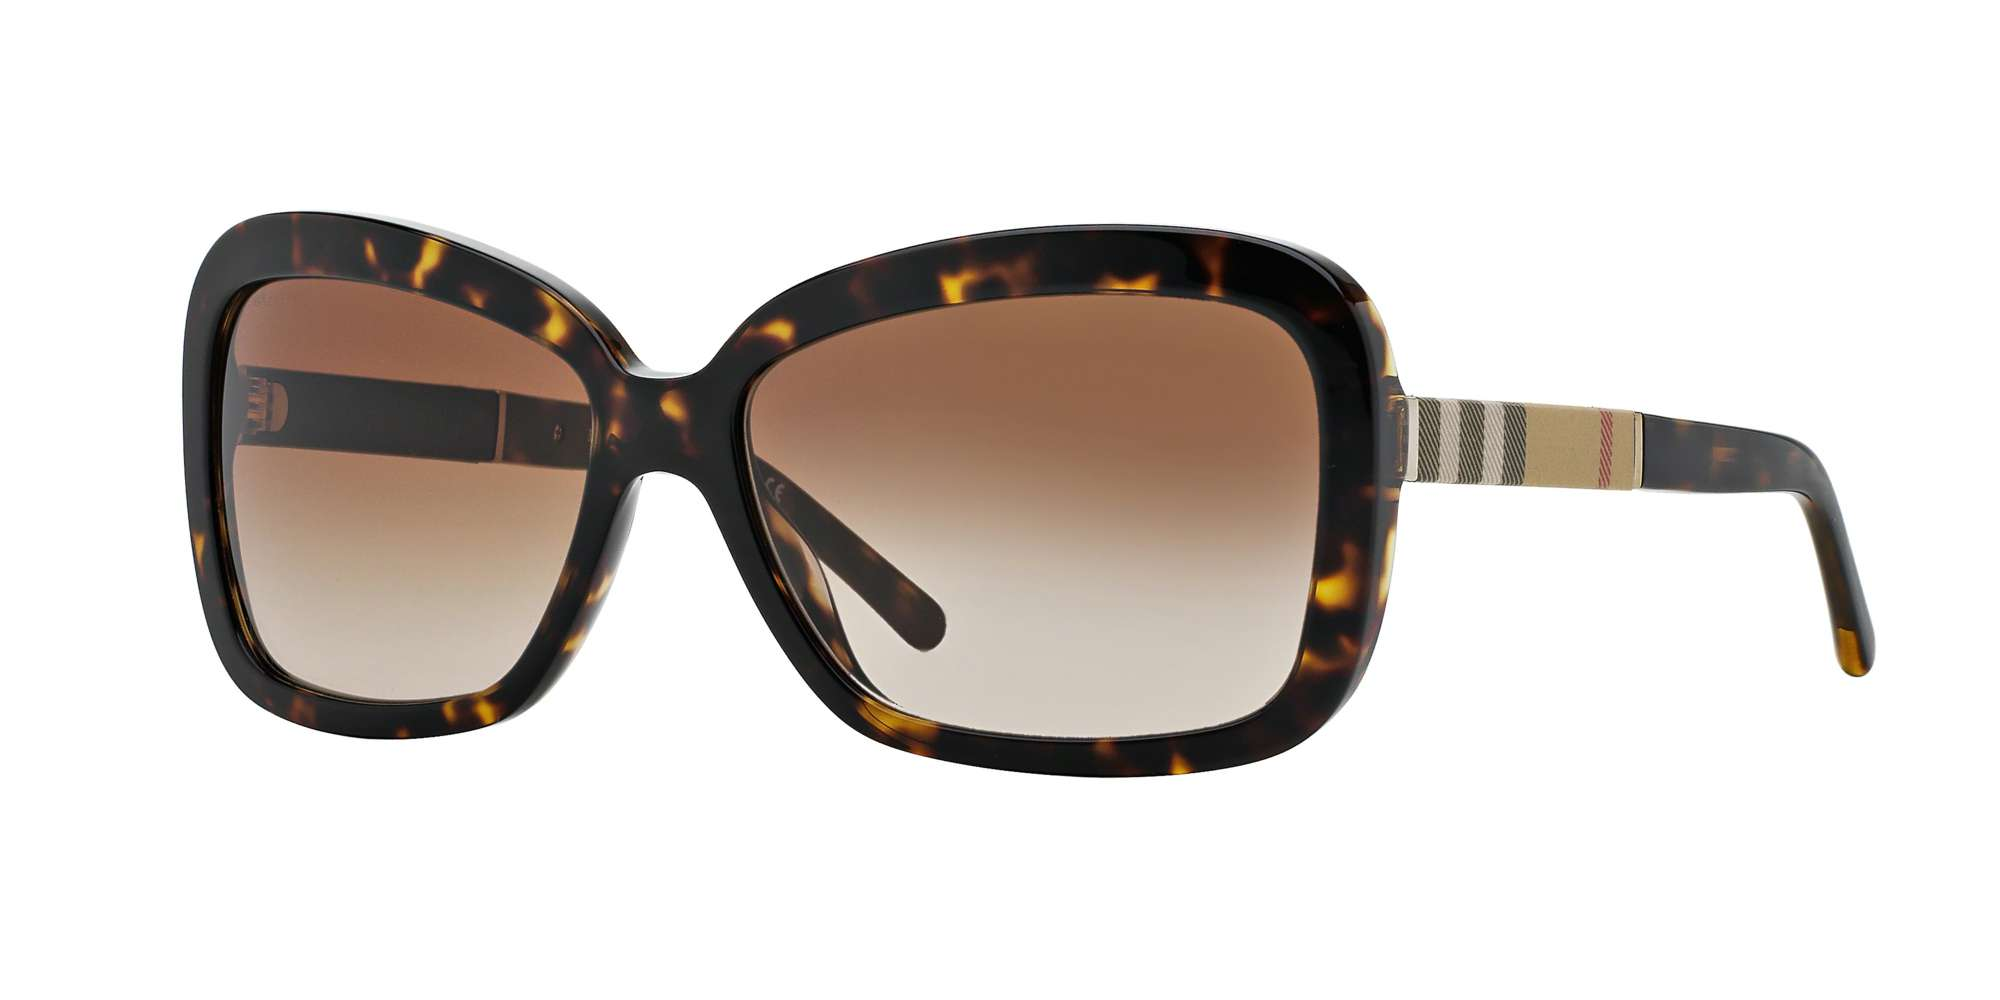 DARK HAVANA / BROWN GRADIENT lenses